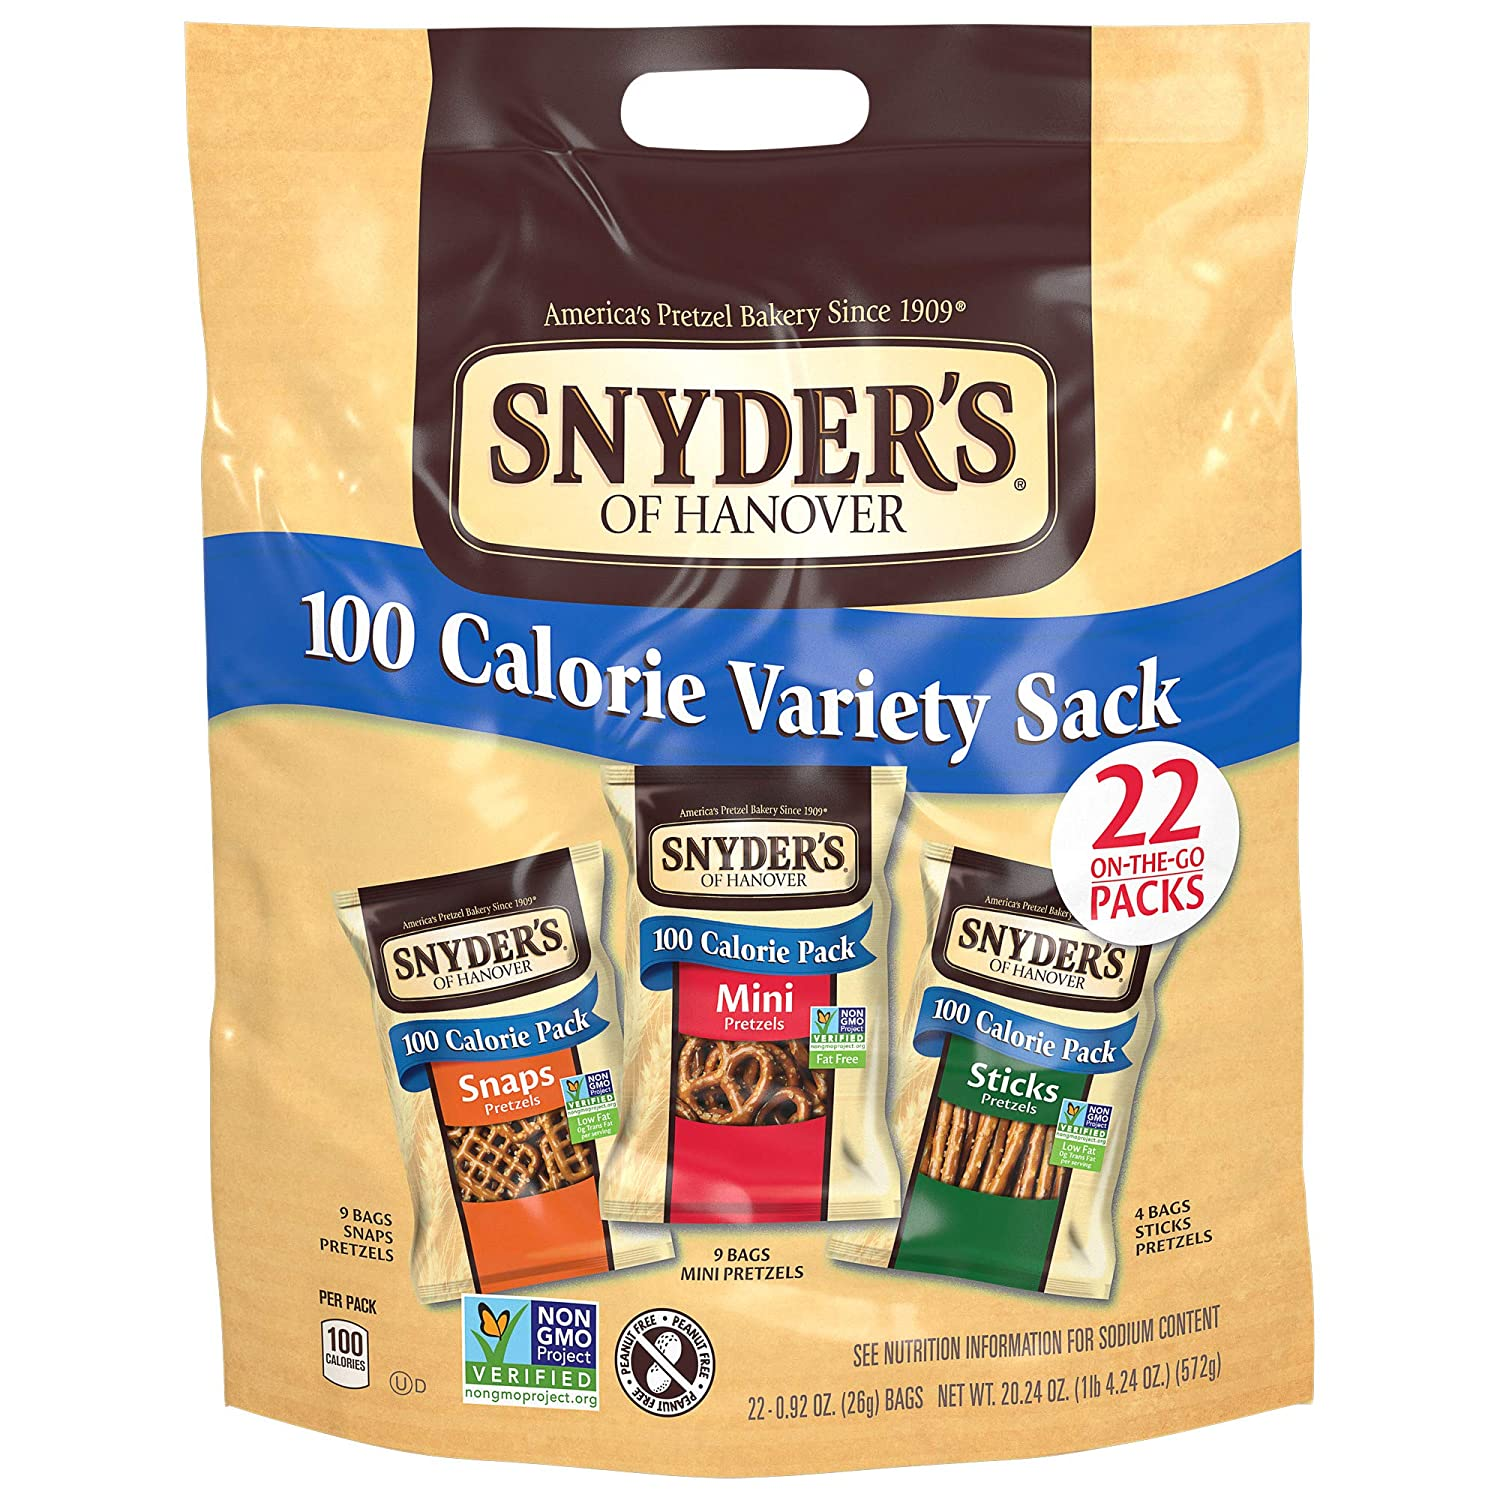 Snyder's of Hanover Pretzels Variety 100 Calorie Pack, 22 Count